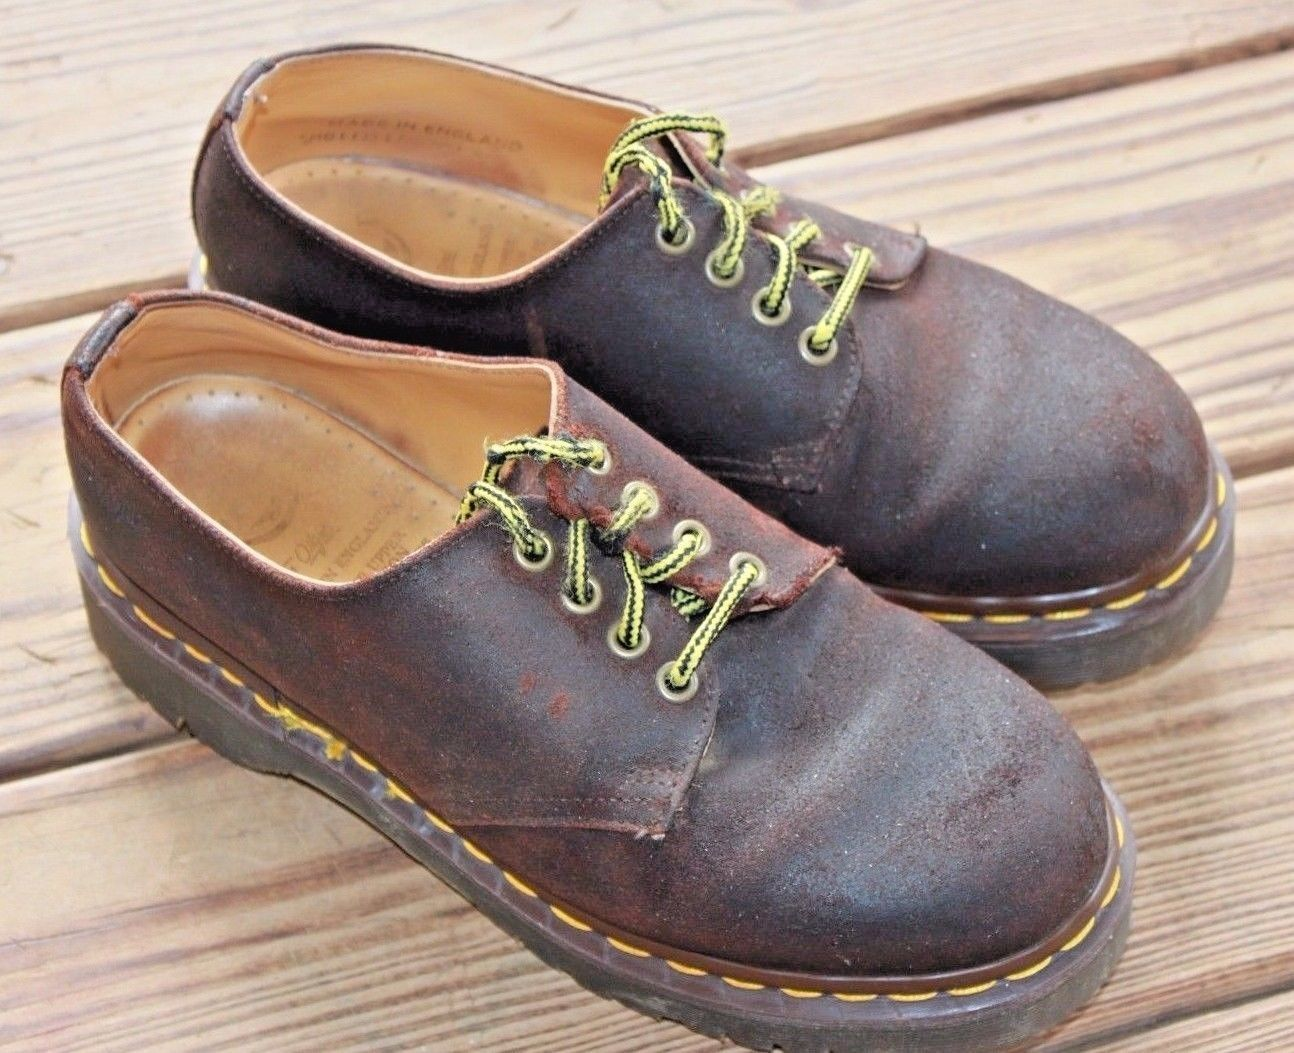 Dr. Doc Marten UK 6 US 8 The Original Brown Leather Oxford England Men's Shoes